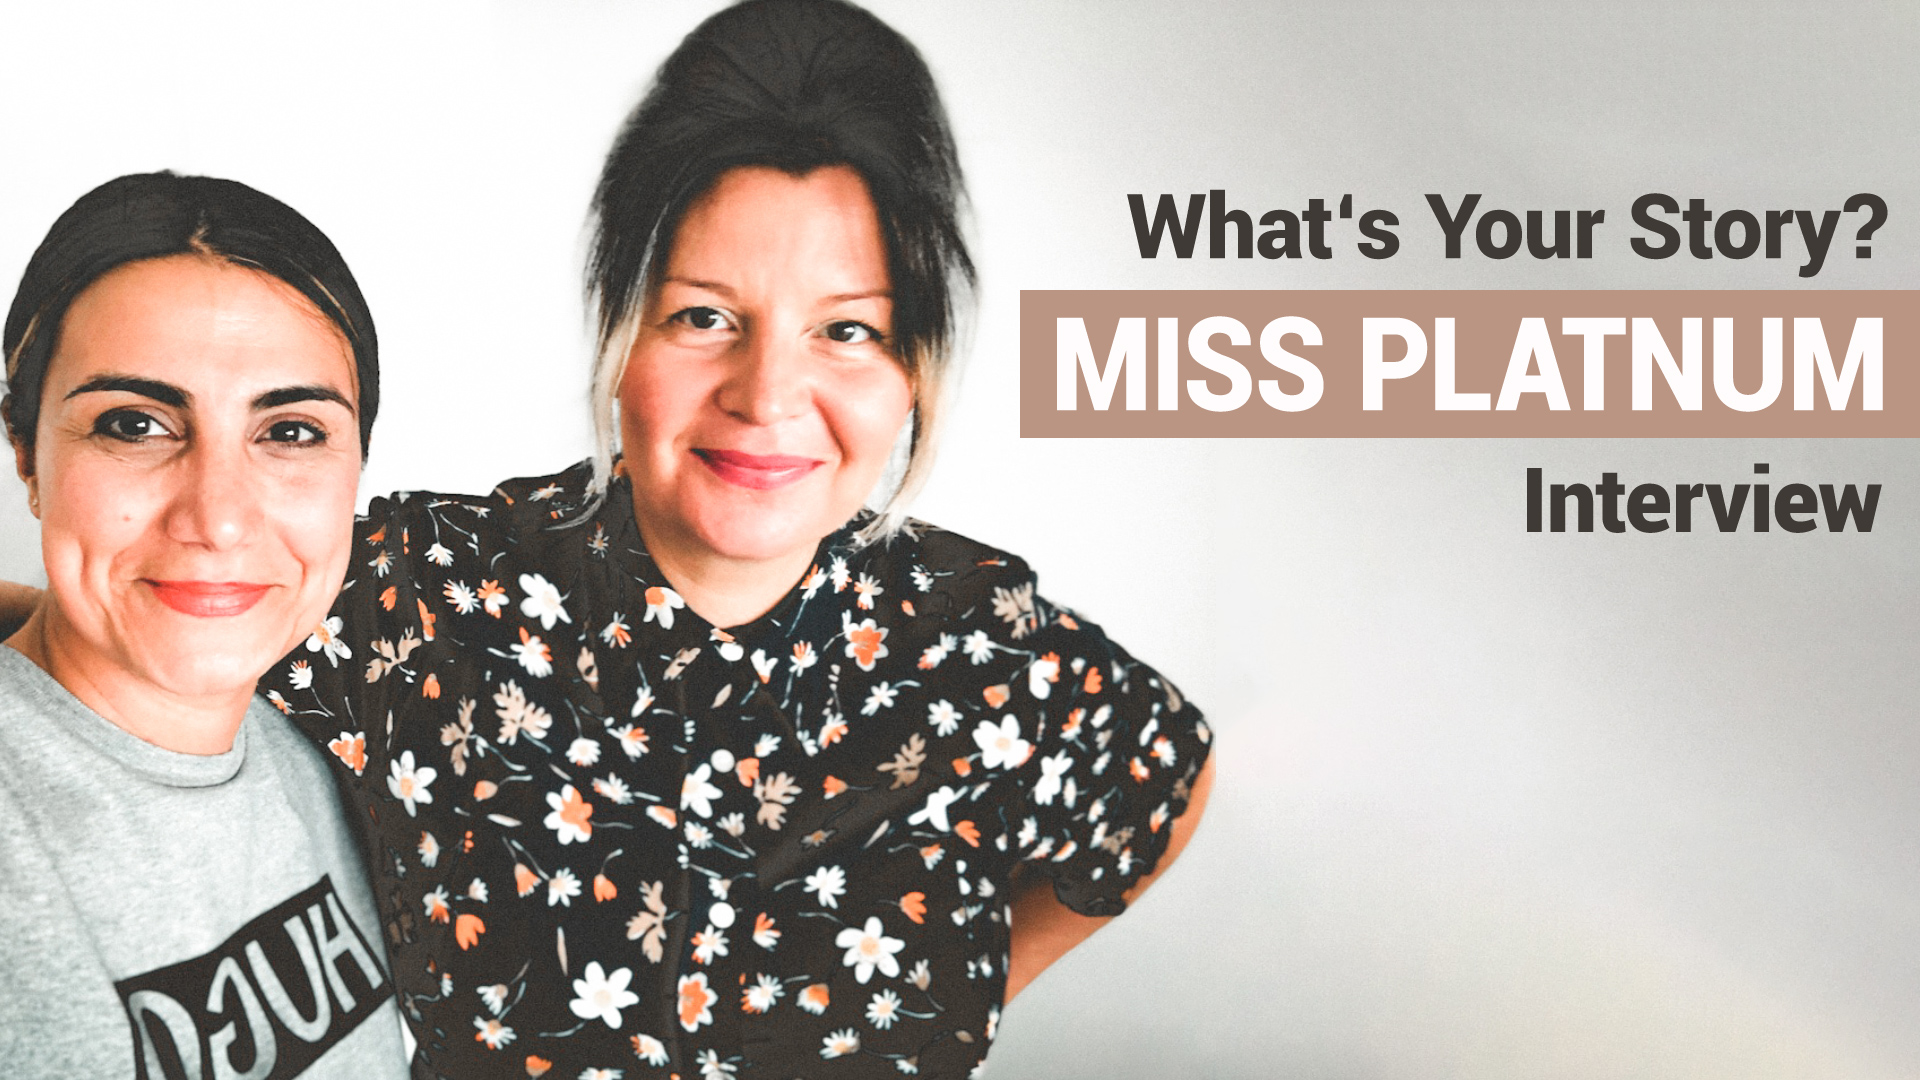 Miss Platnum im Podcast-Interview - What's Your Story?